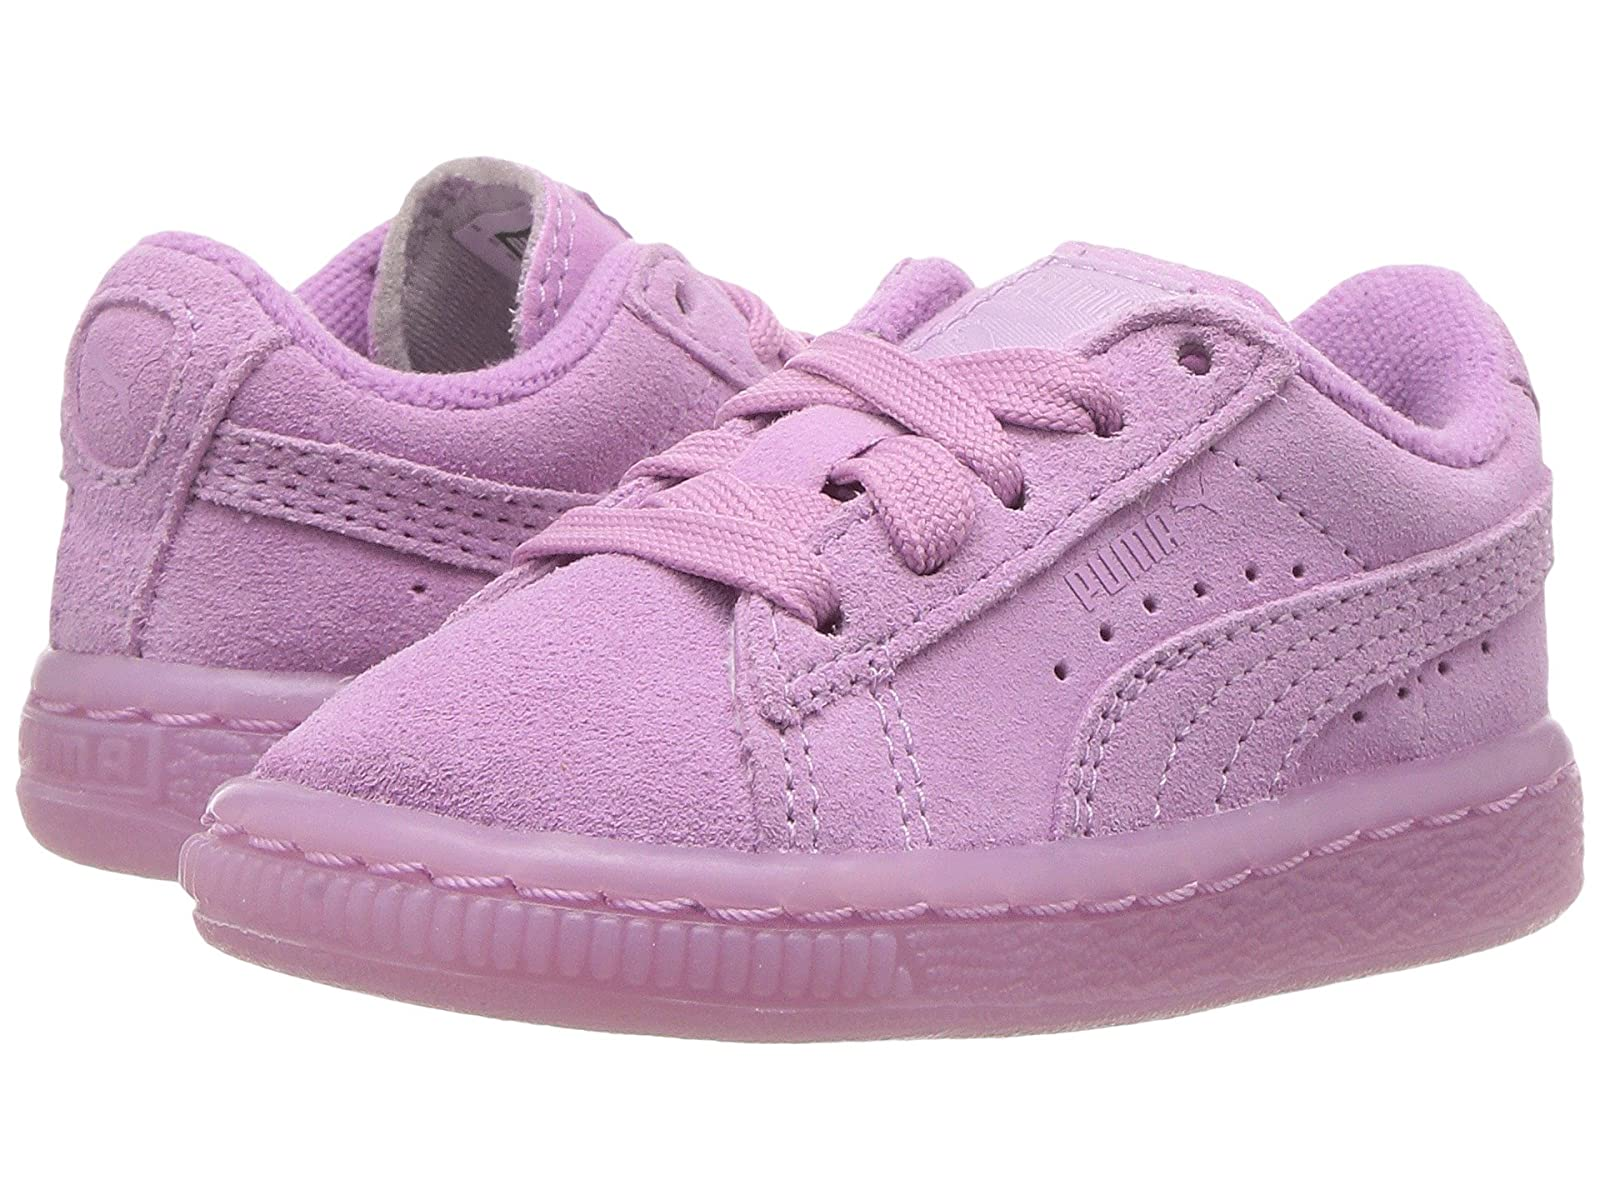 Puma Kids Suede Iced (Toddler)Cheap and distinctive eye-catching shoes